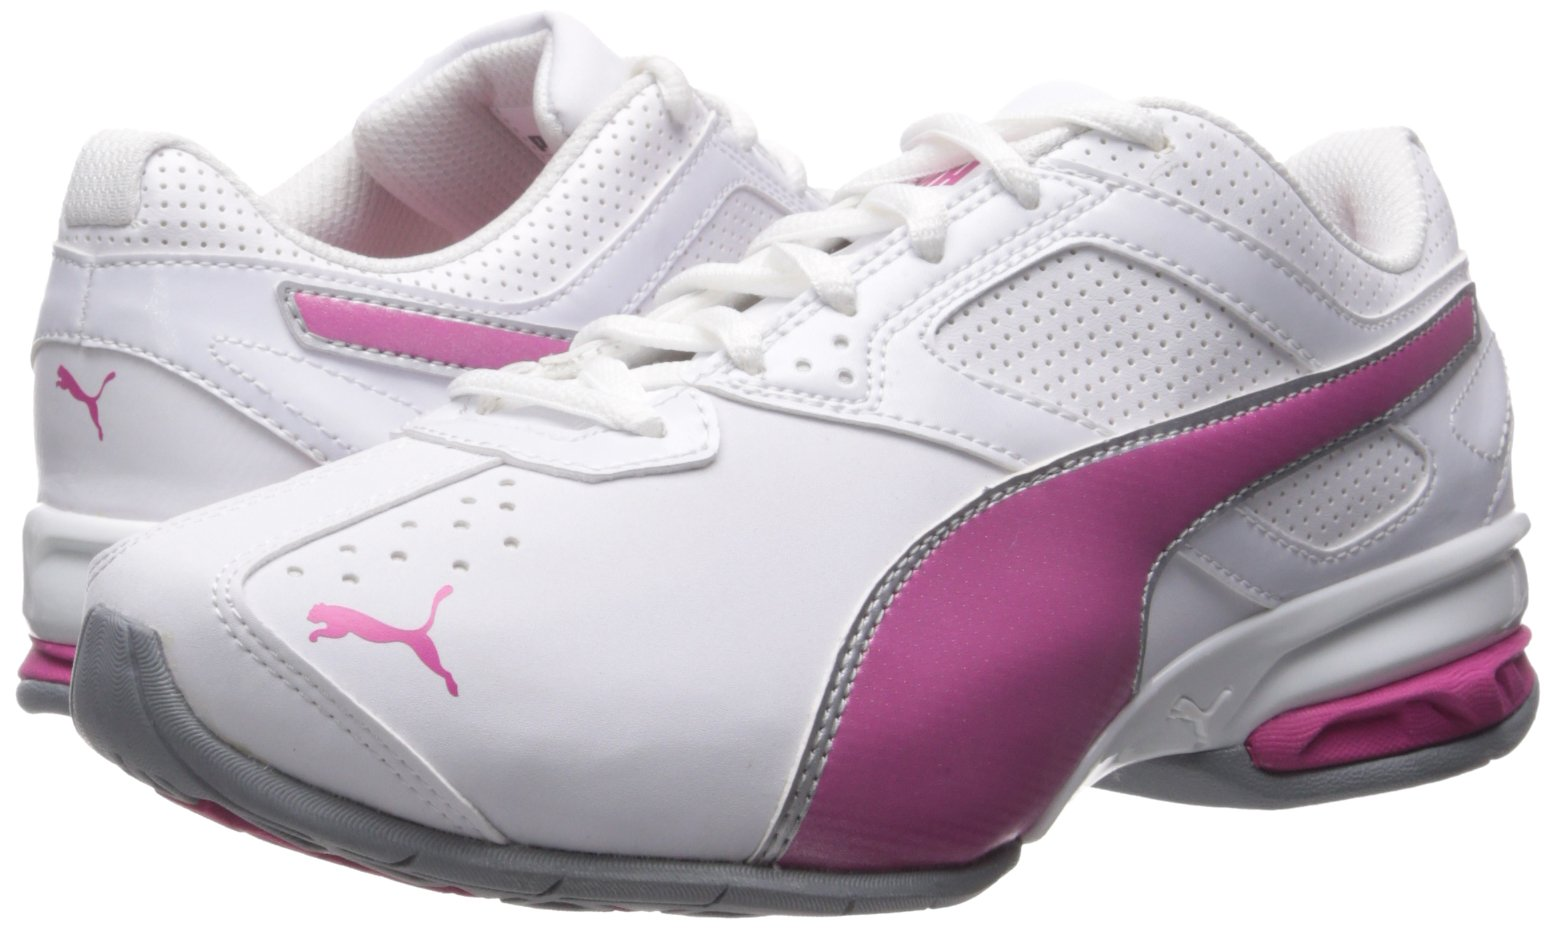 PUMA Women's Tazon 6 WN's fm Cross-Trainer Shoe, White/Fuchsia Purple Silver, 6.5 M US by PUMA (Image #6)